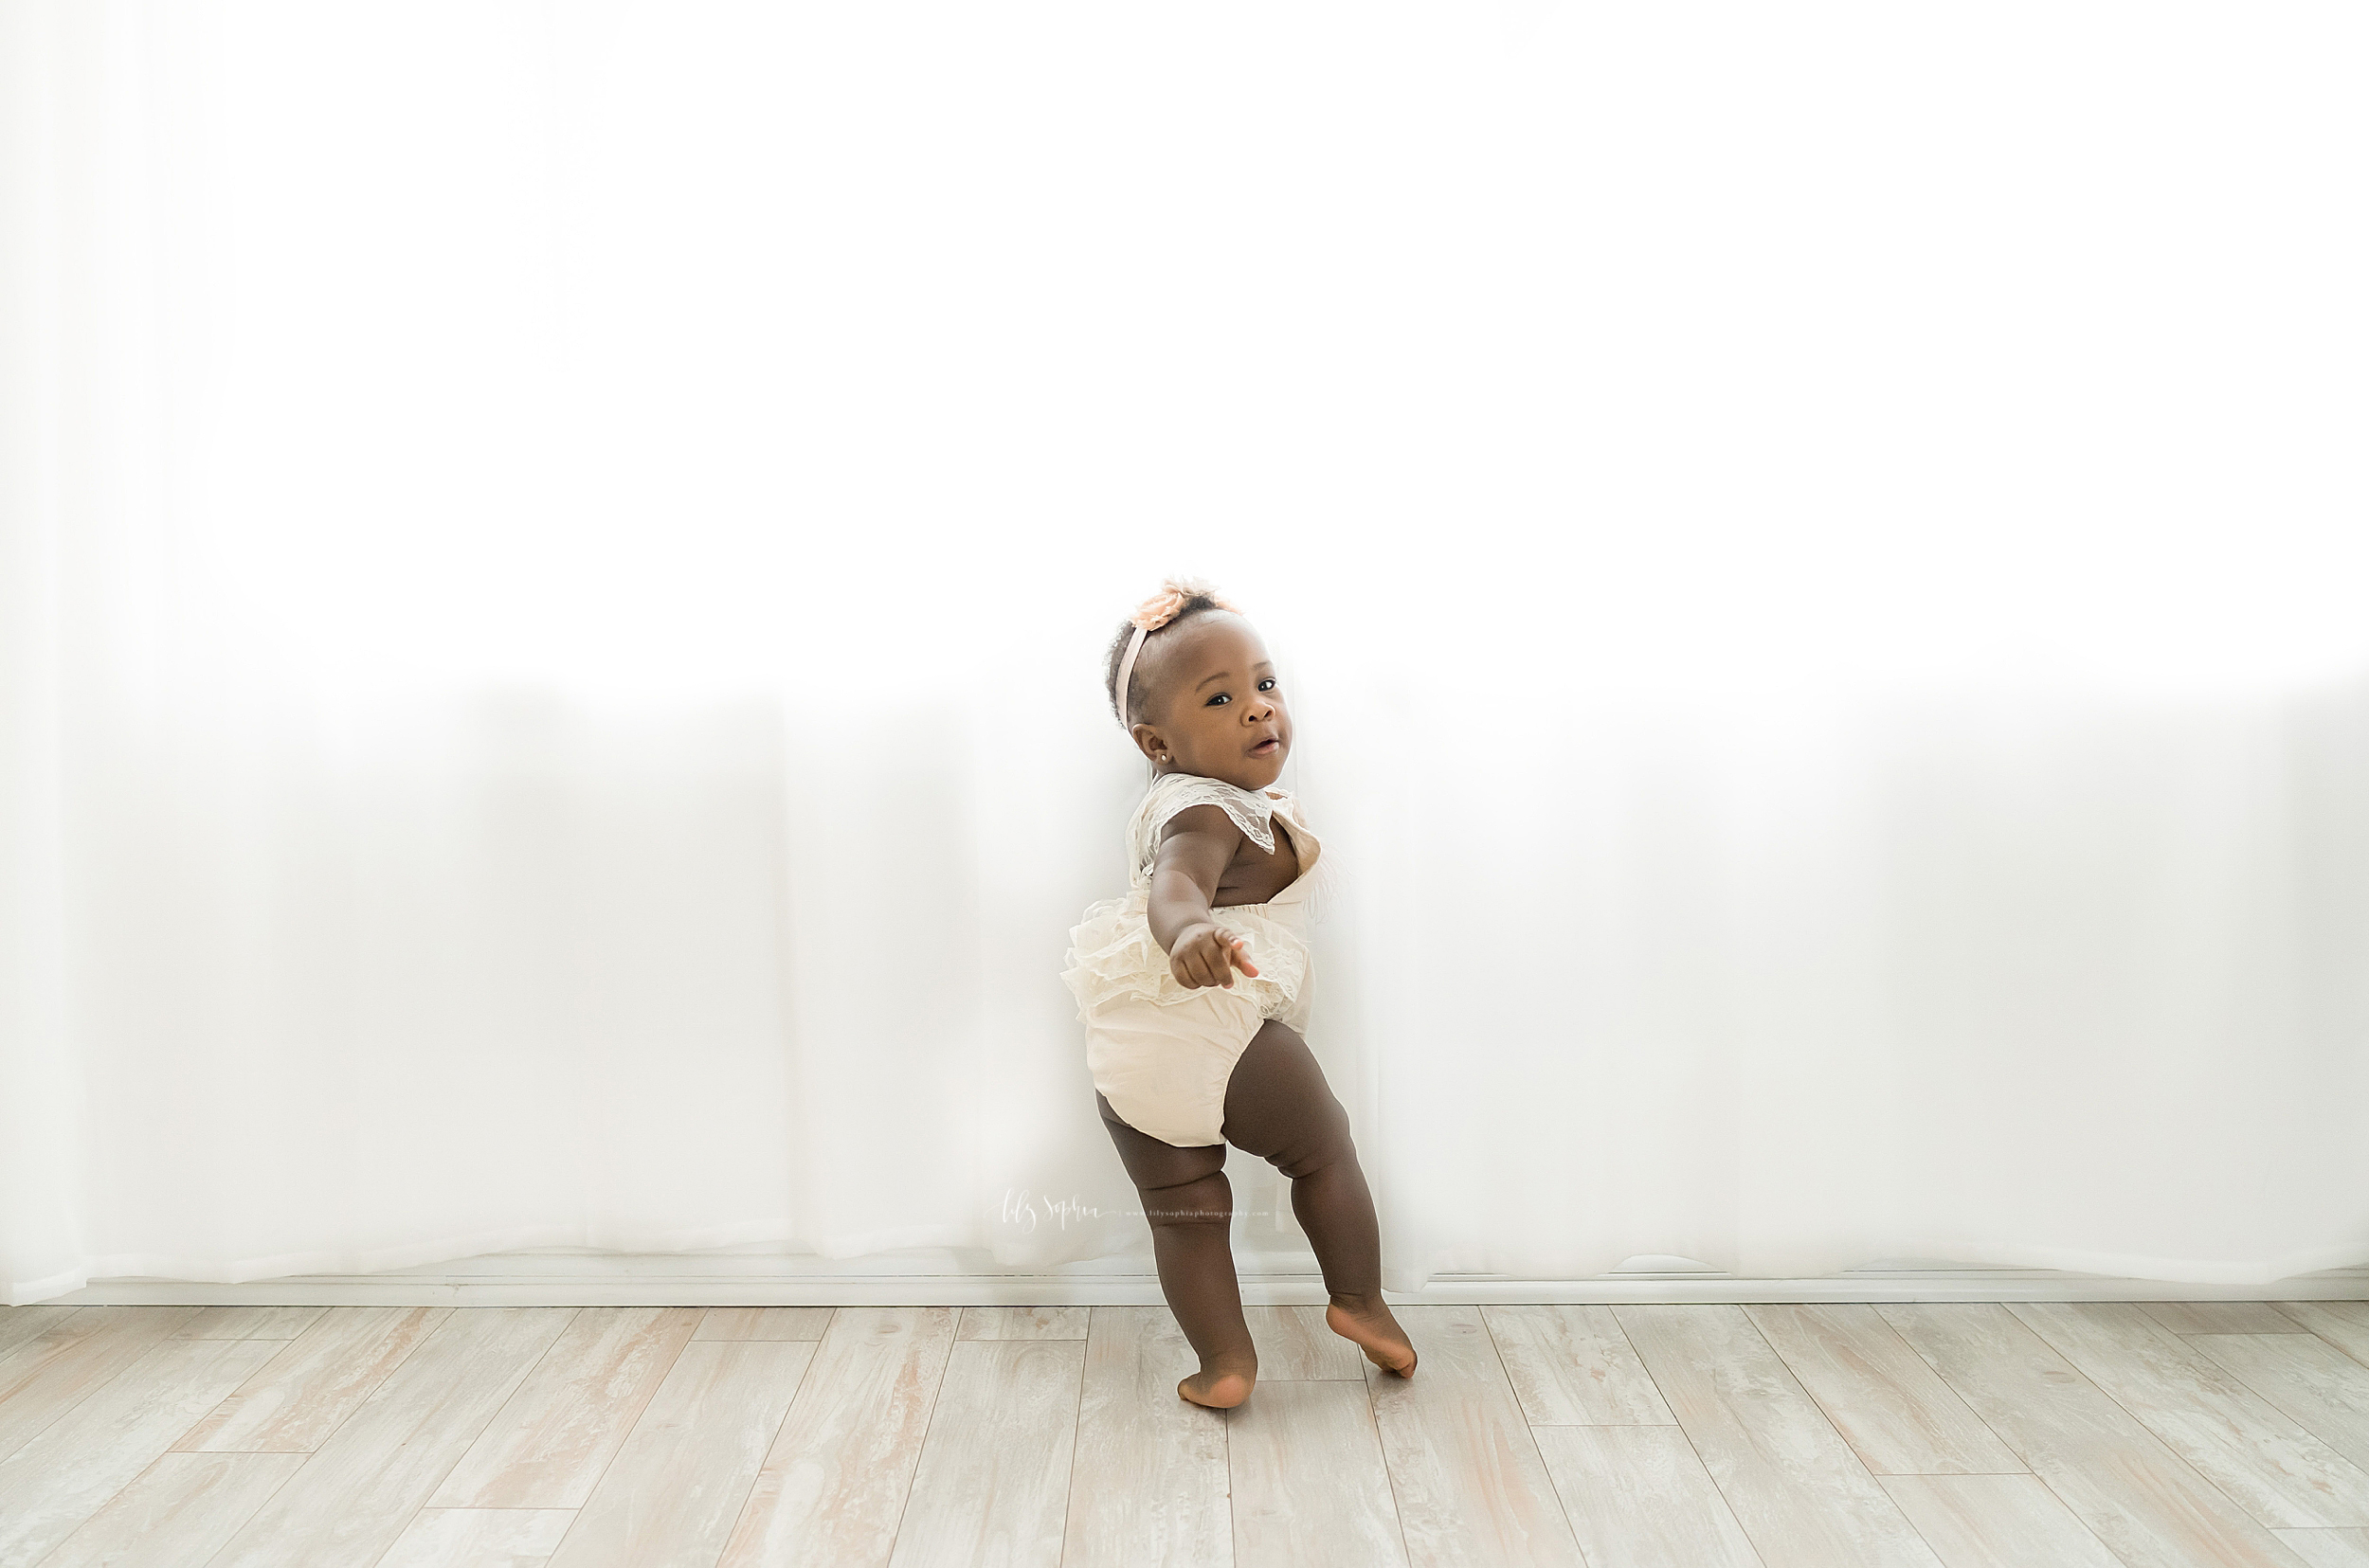 atlanta-decatur-candler-park-sandy-springs-buckhead-virginia-highlands-west-end-decatur-lily-sophia-photography-studio-one-year-old-baby-girl-first-birthday-cake-smash-toddler-big-brother-family-parents-session_1875.jpg